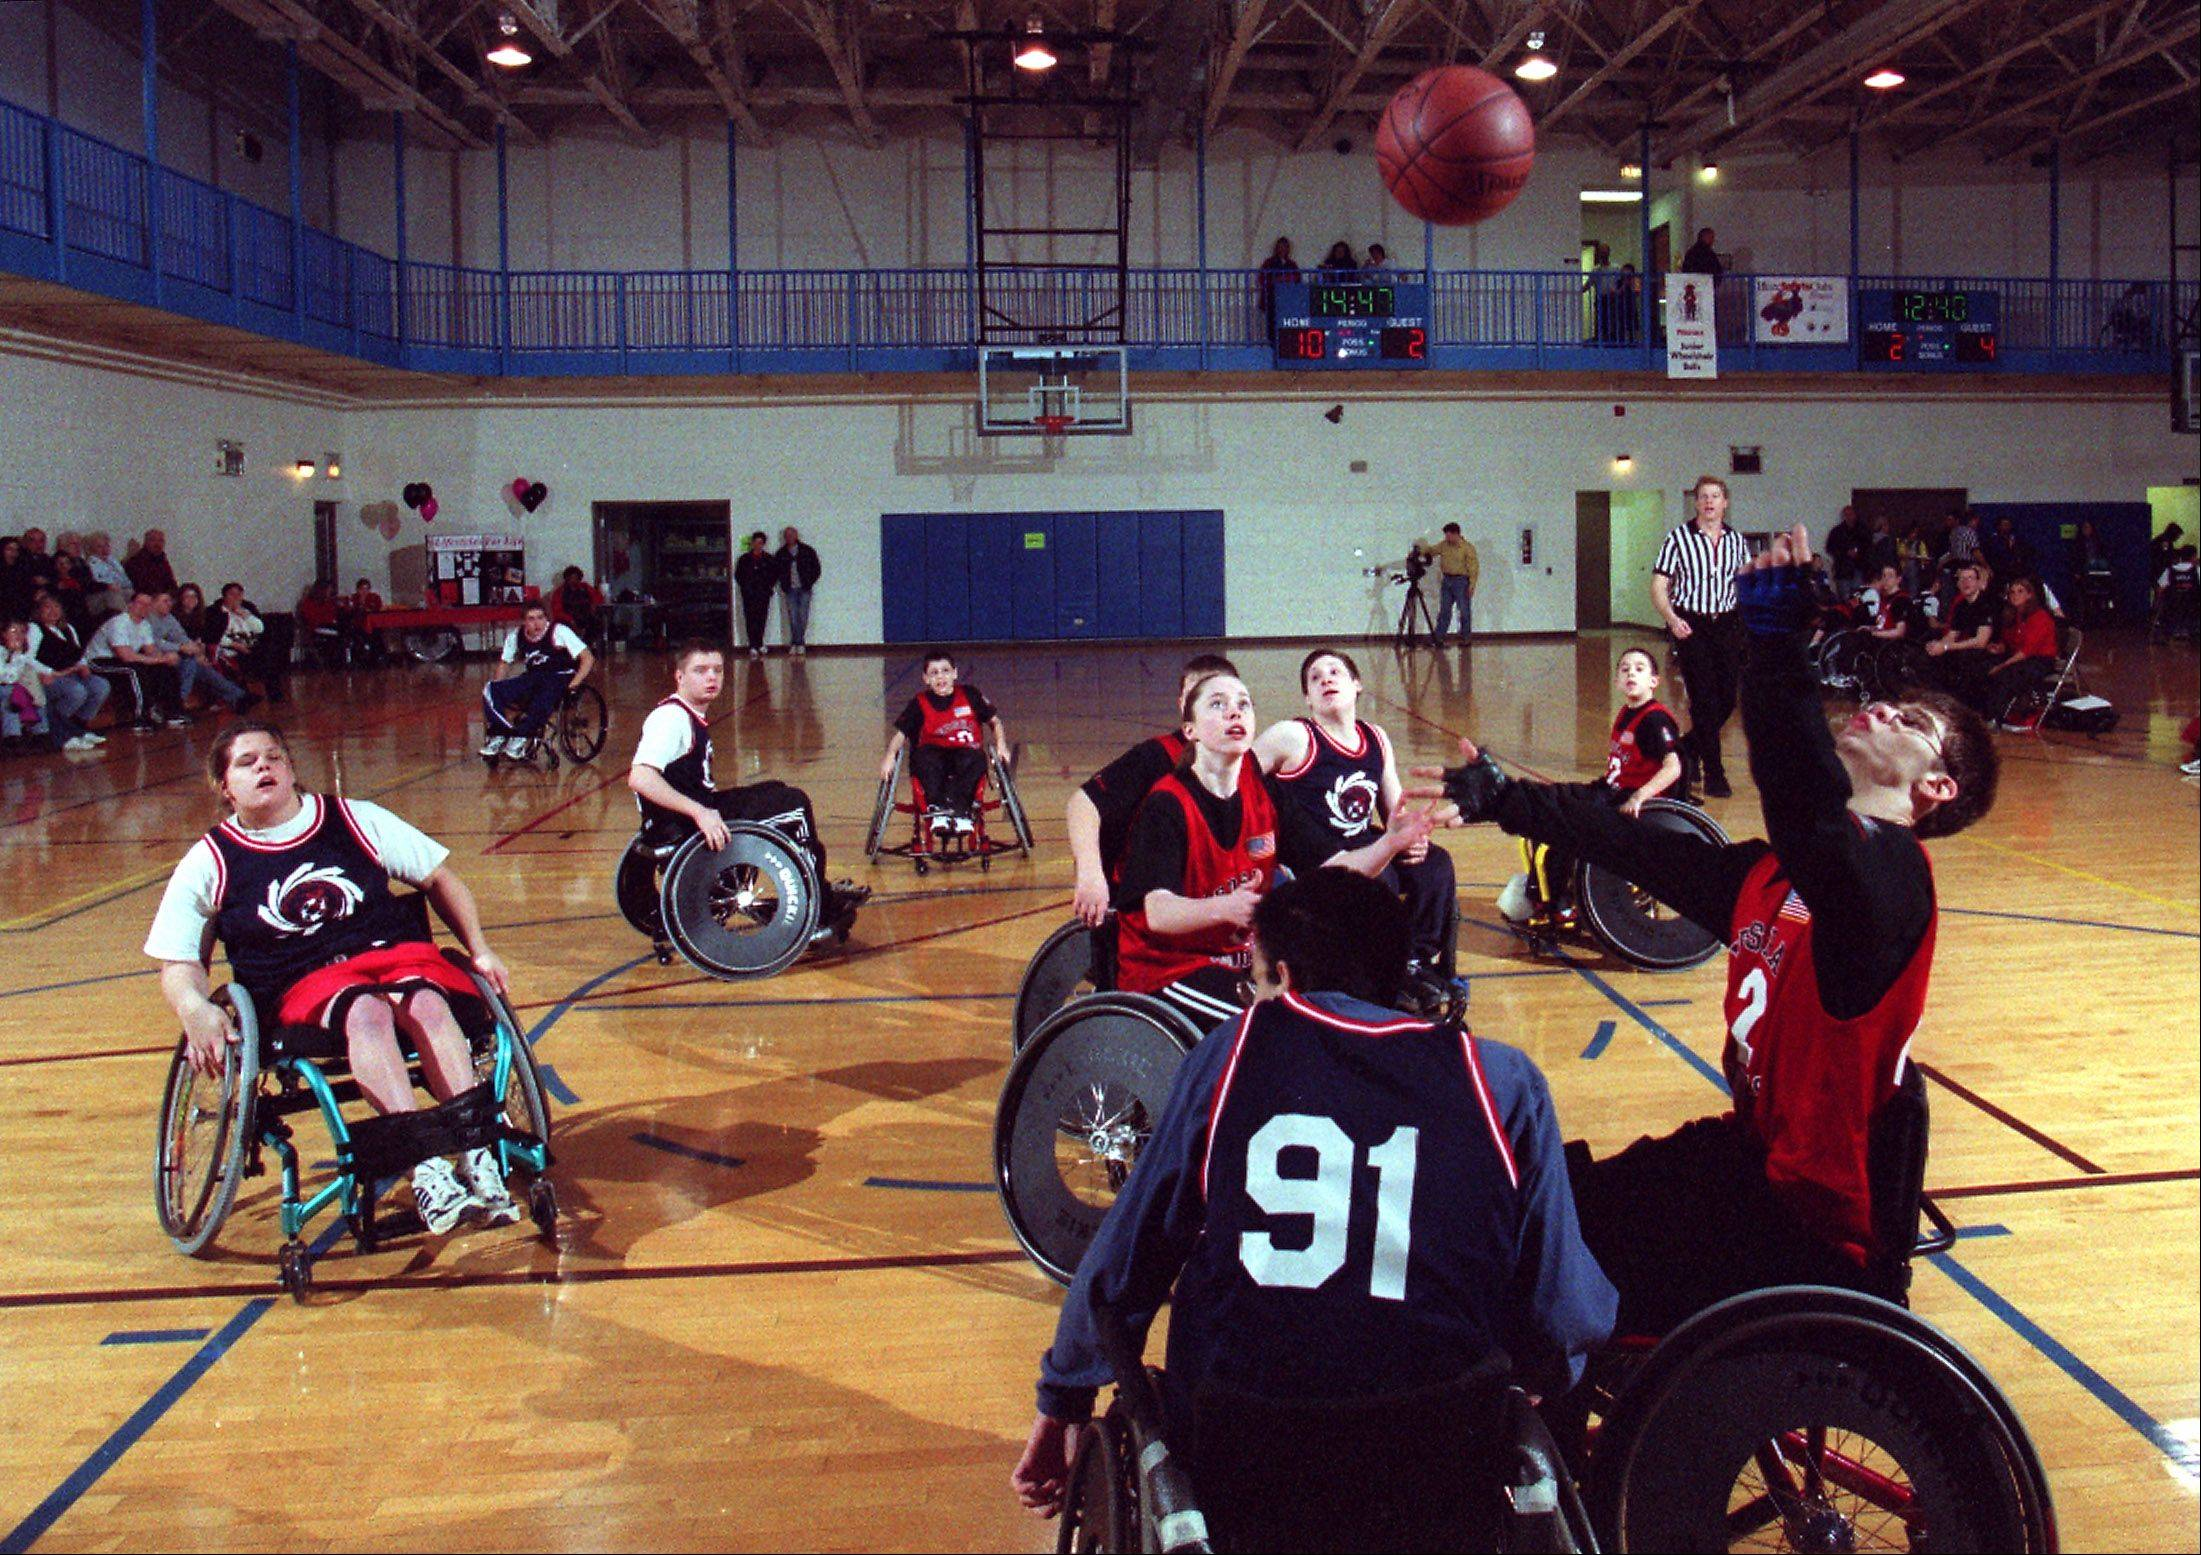 Fifteen teams from across the Midwest will compete Jan. 18 in a wheelchair basketball tournament hosted by the Junior Bulls at Addison Trail High School.